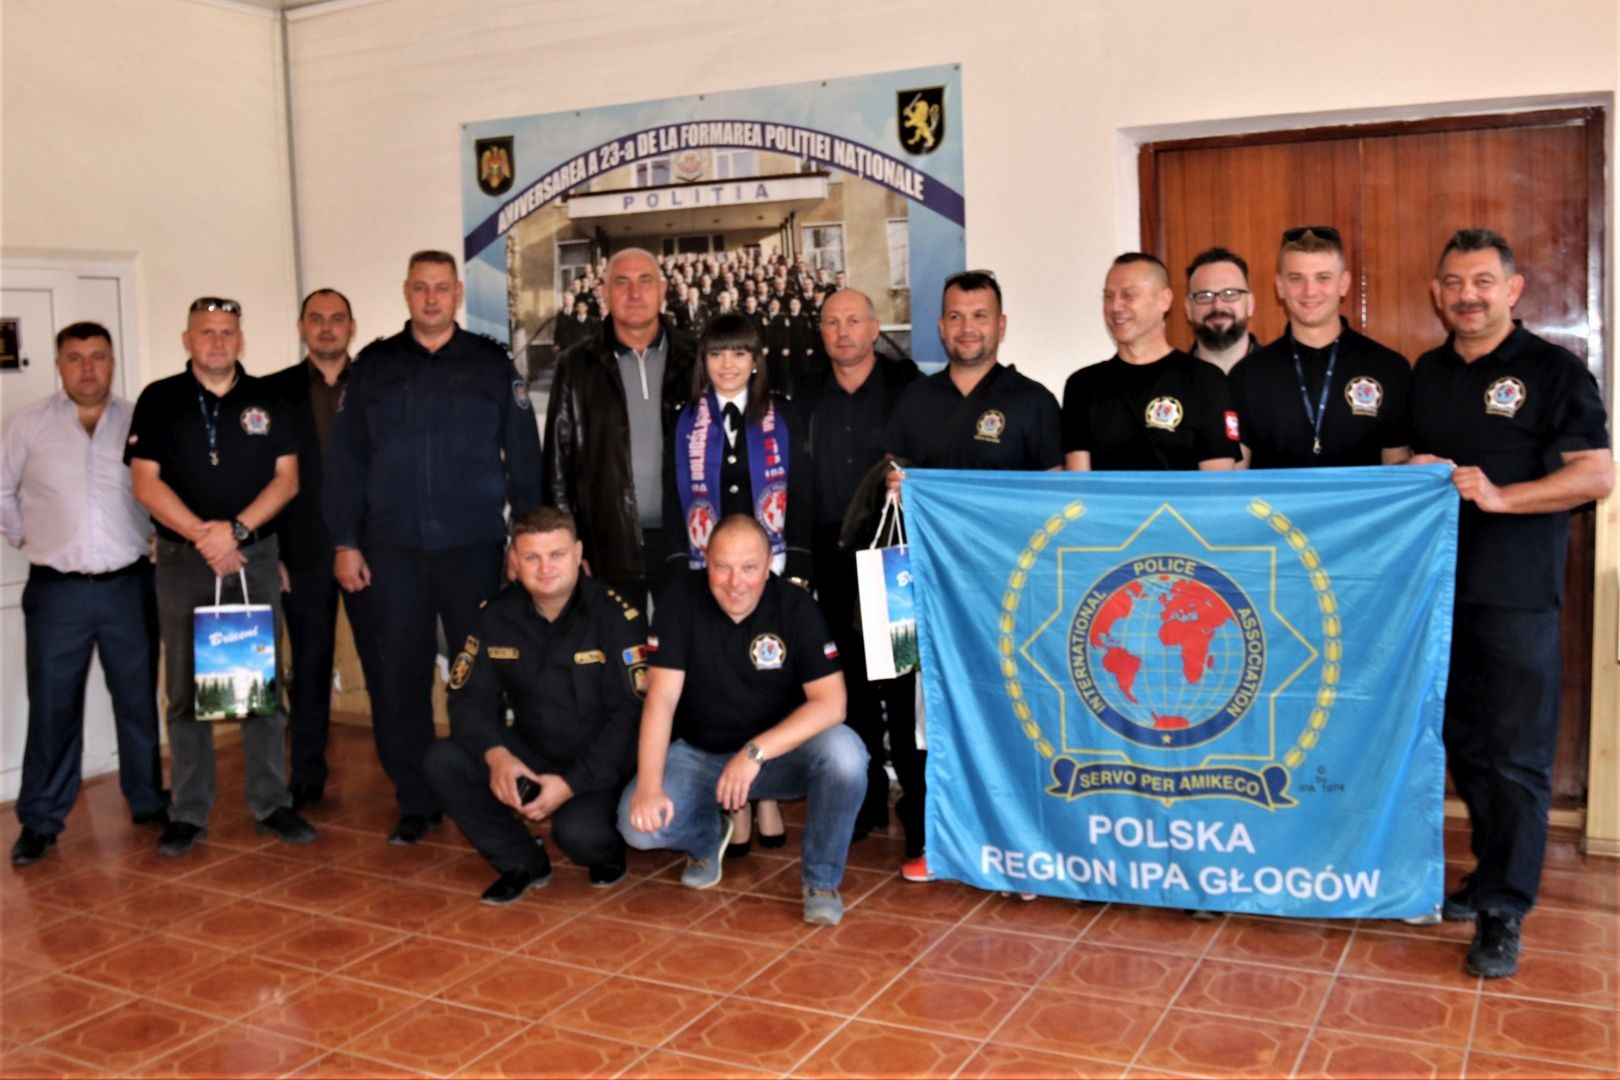 Police officers from IPA Poland's Lower Silesia Region come to the rescue of their Moldovan colleagues